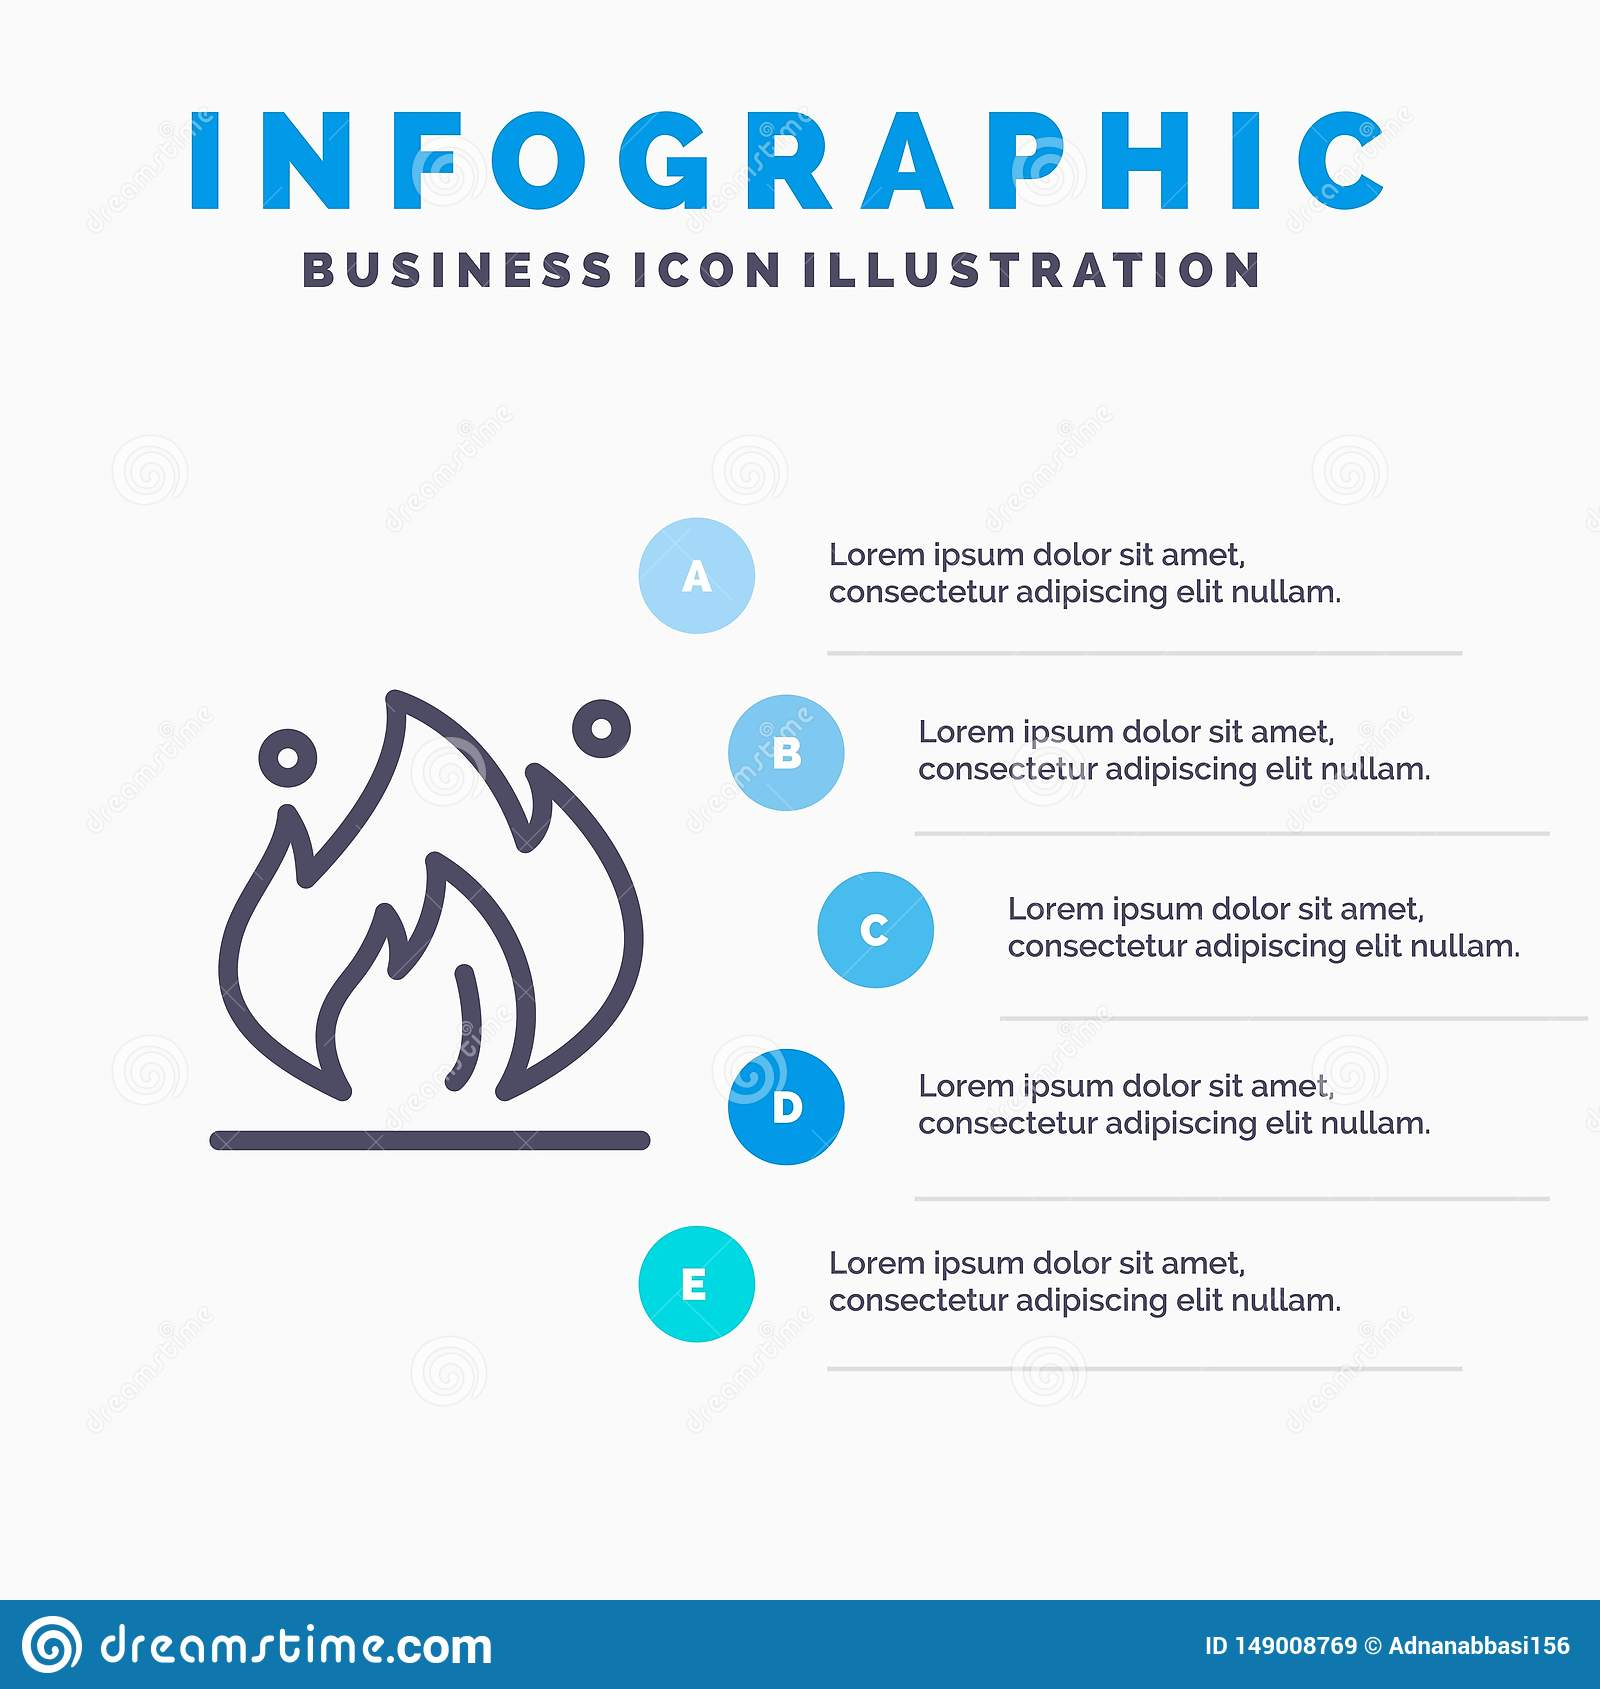 Fire, Industry, Oil, Construction Line icon with 5 steps presentation infographics Background